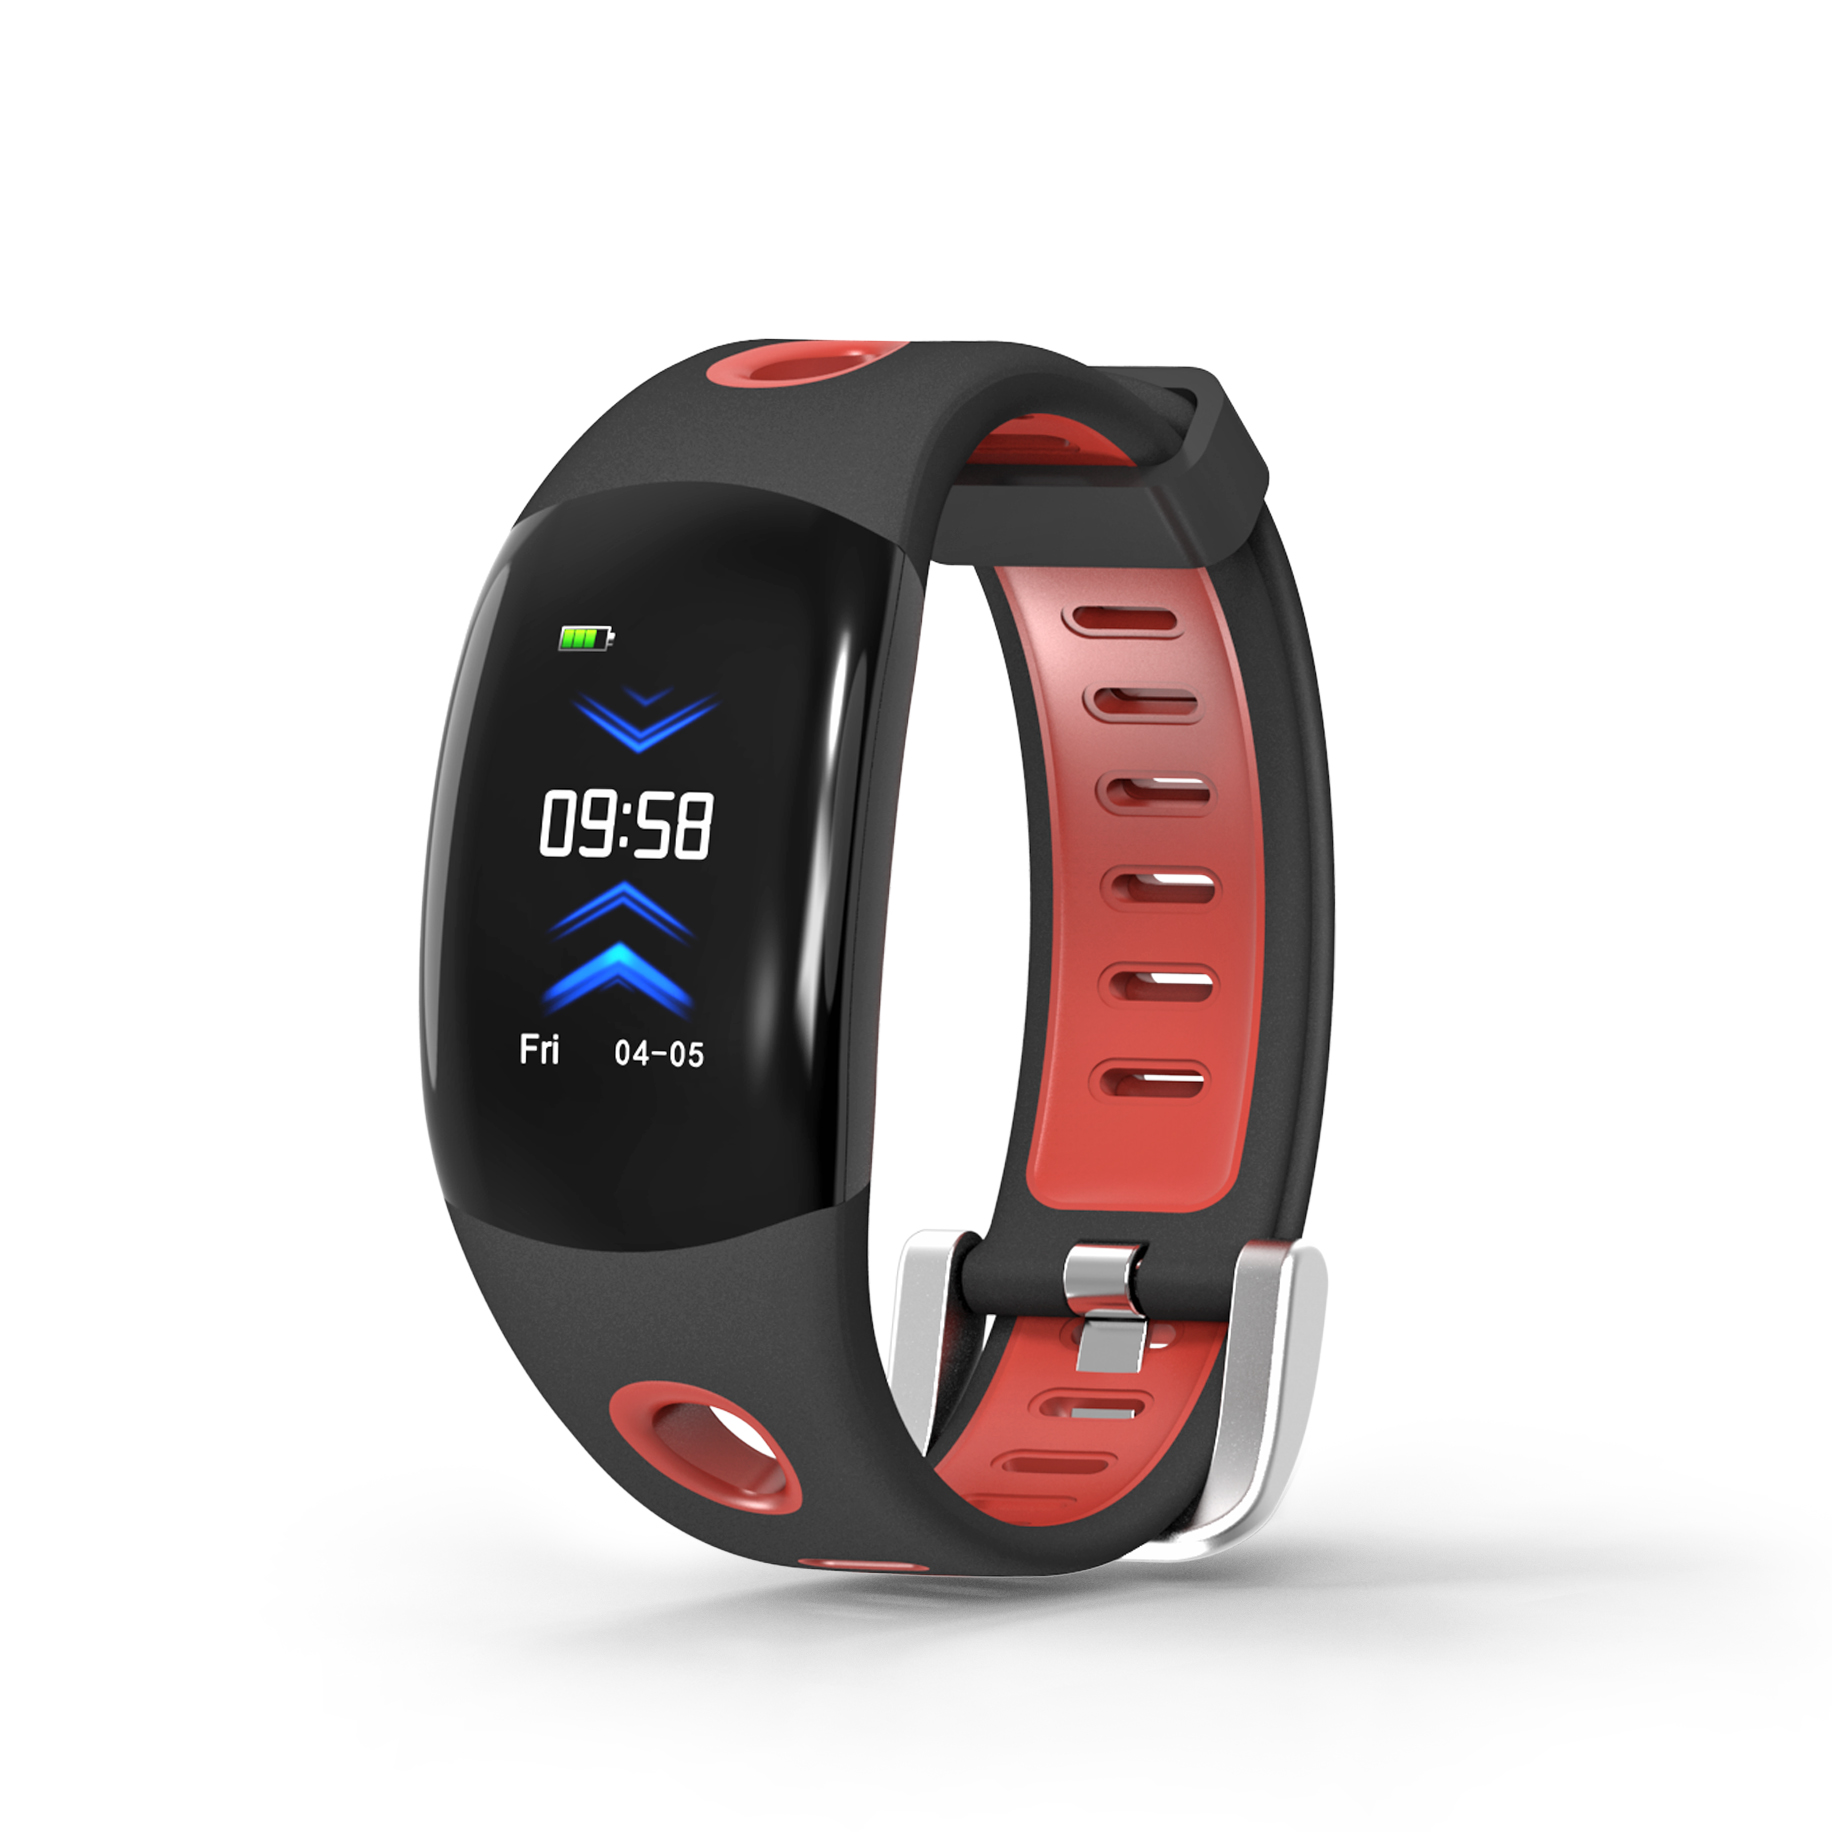 images/wholesale-electronics-2019/Fitness-Tracker-Bracelet-Red-Heart-Rate-Monitor-Distance-Counter-Pedometer-IP68Waterproof-plusbuyer.jpg